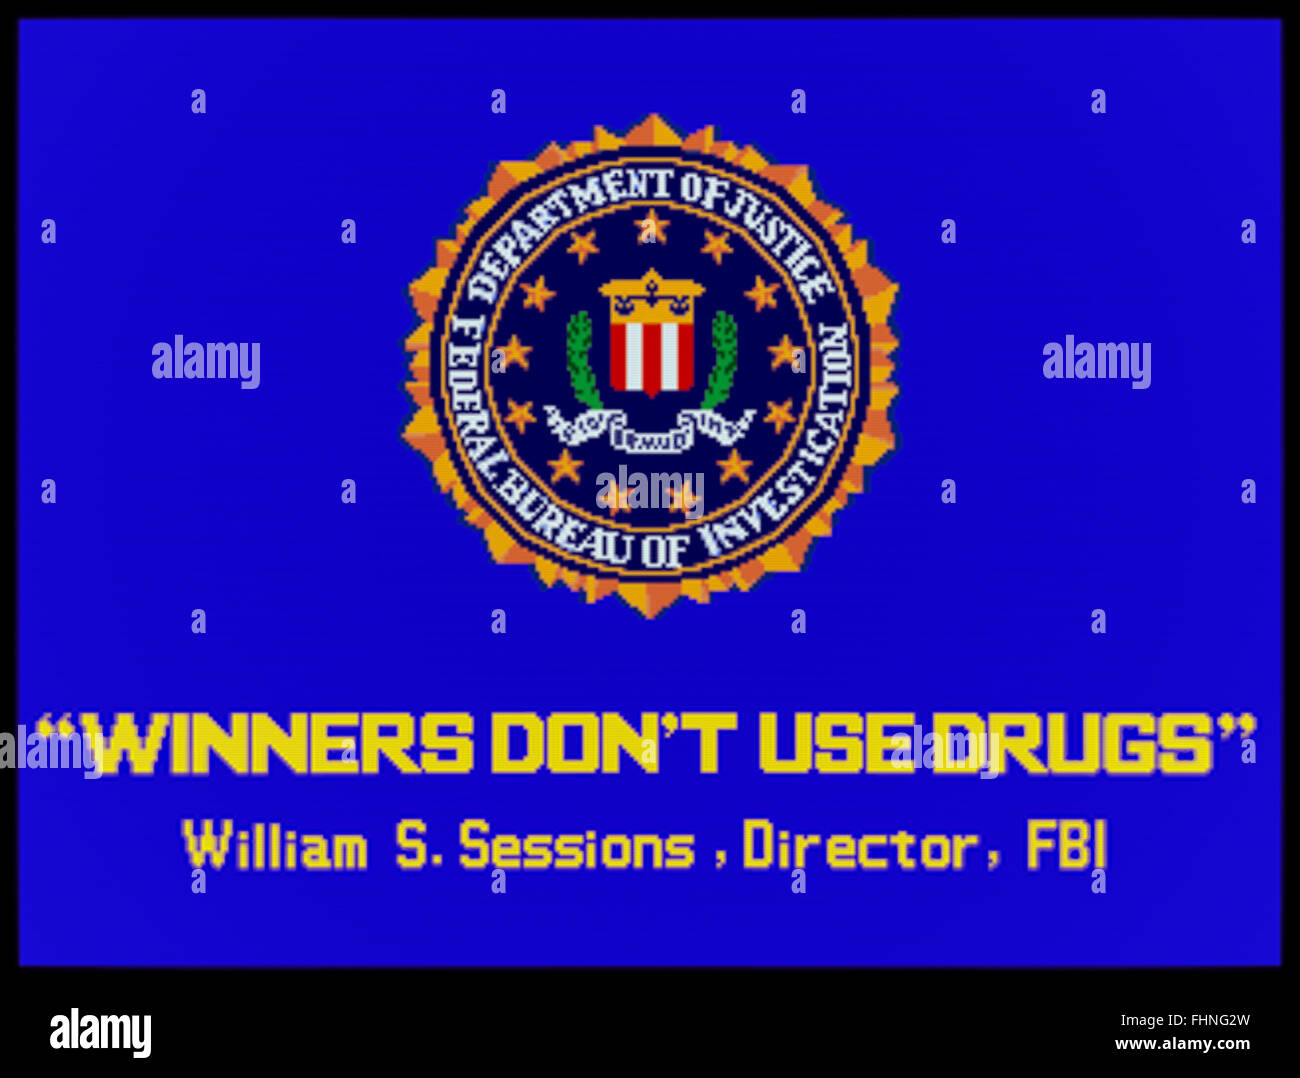 'Winners Don't Use Drugs' anti-drug splash screen message shown on coin-operated arcade machines during - Stock Image